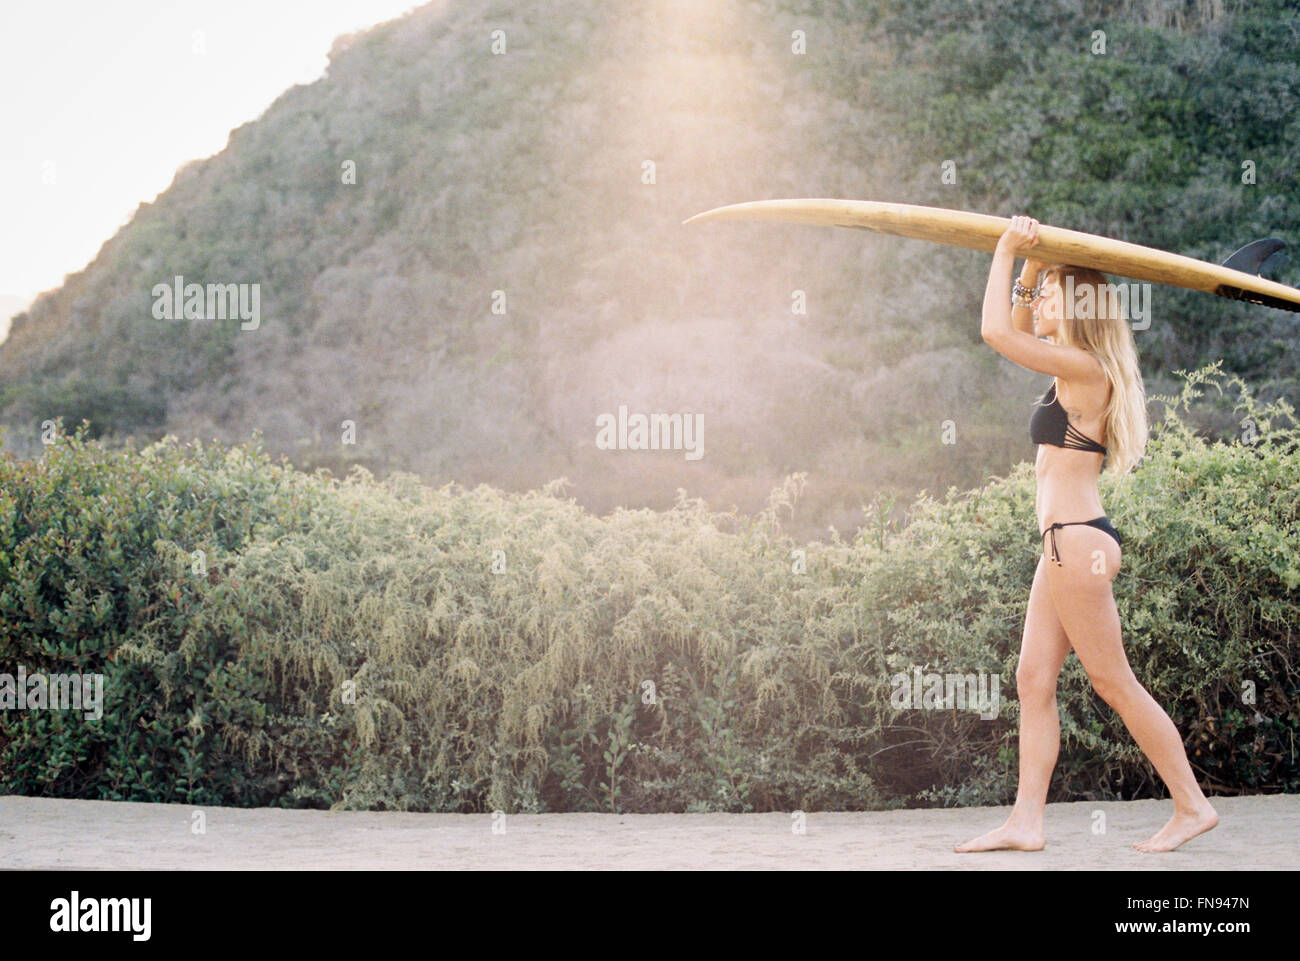 A woman in a black bikini walking down a path carrying a surfboard on her head. - Stock Image